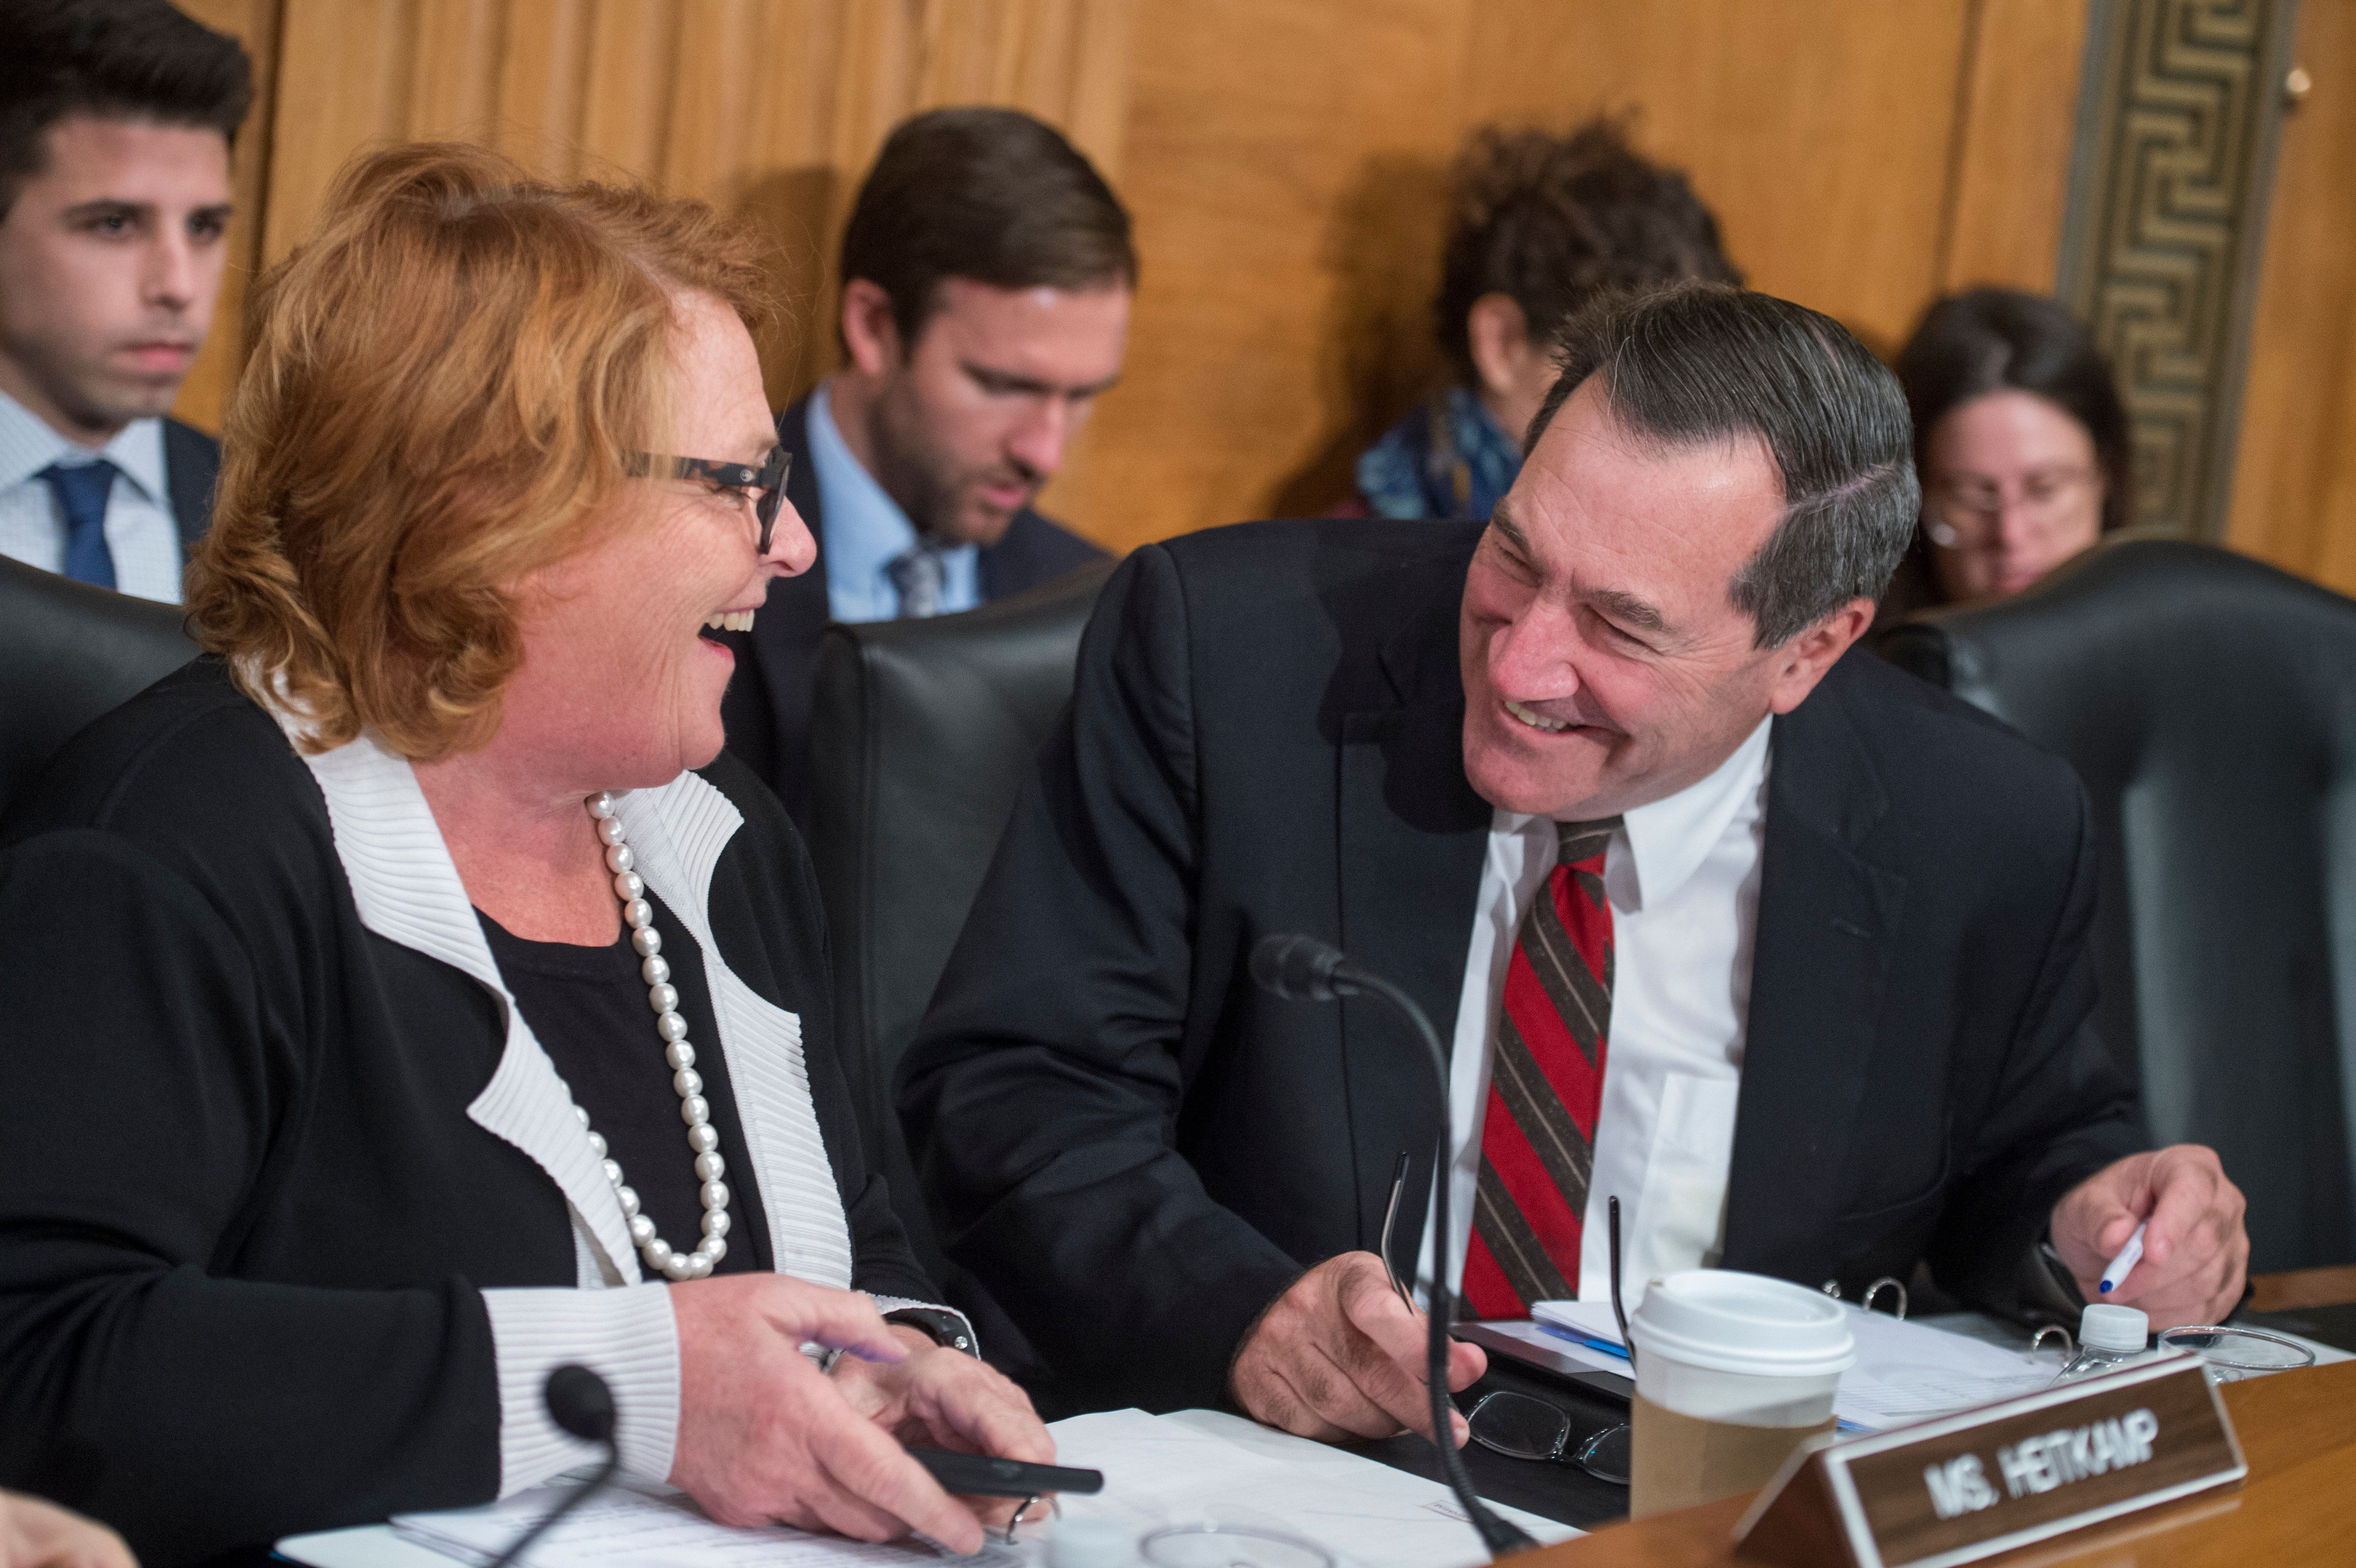 Sens. Heidi Heitkamp (D-N.D.) and Joe Donnelly (D-Ind.) are in tight re-election races this year. The Trump administration&nb